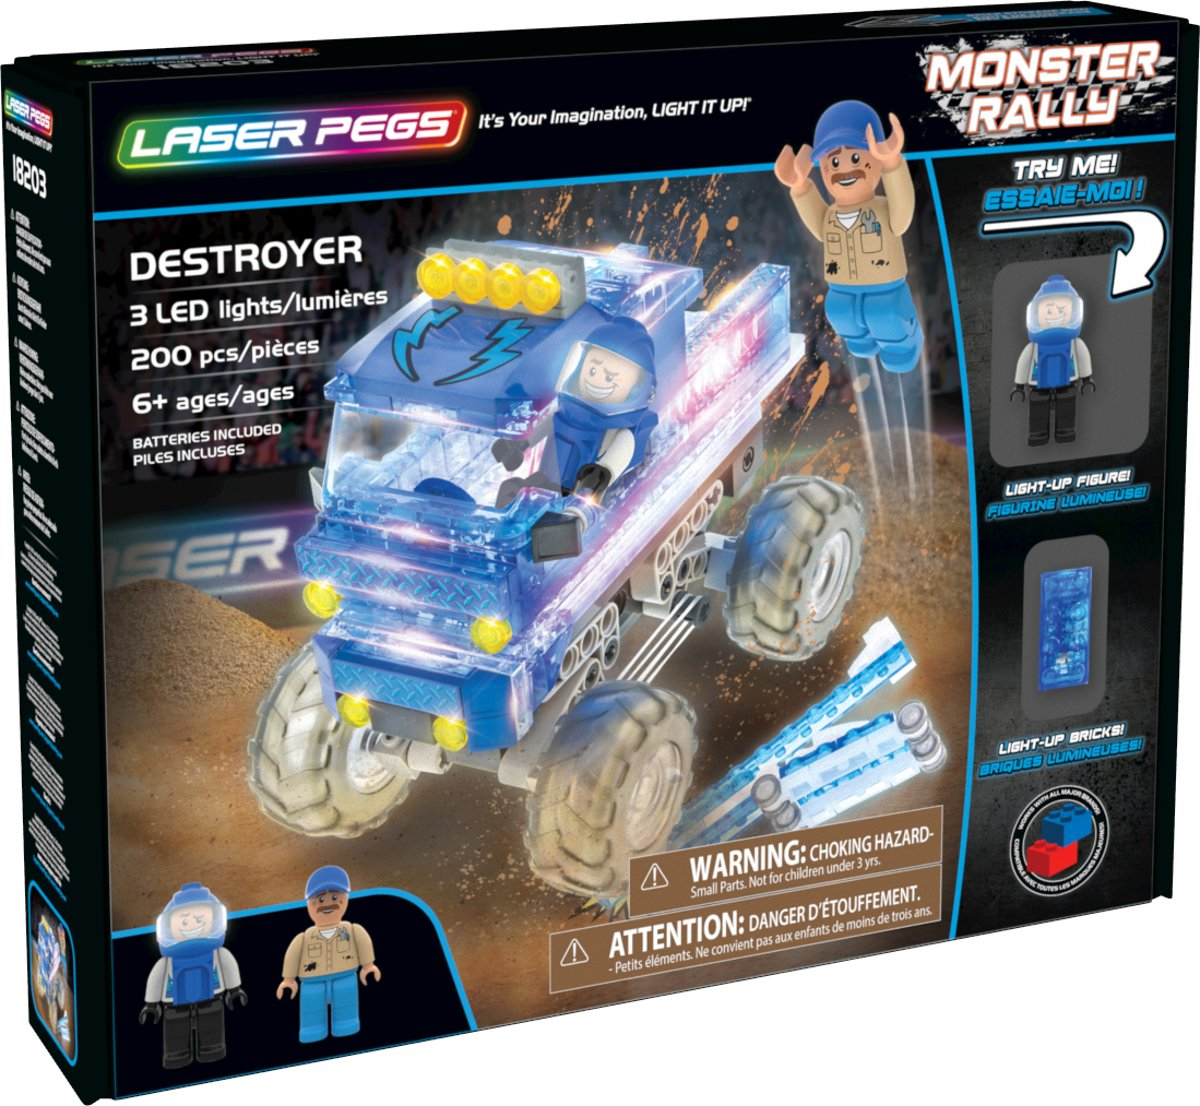 Laser Pegs Monster Truck Destroyer Blauw - Constructiespeelgoed